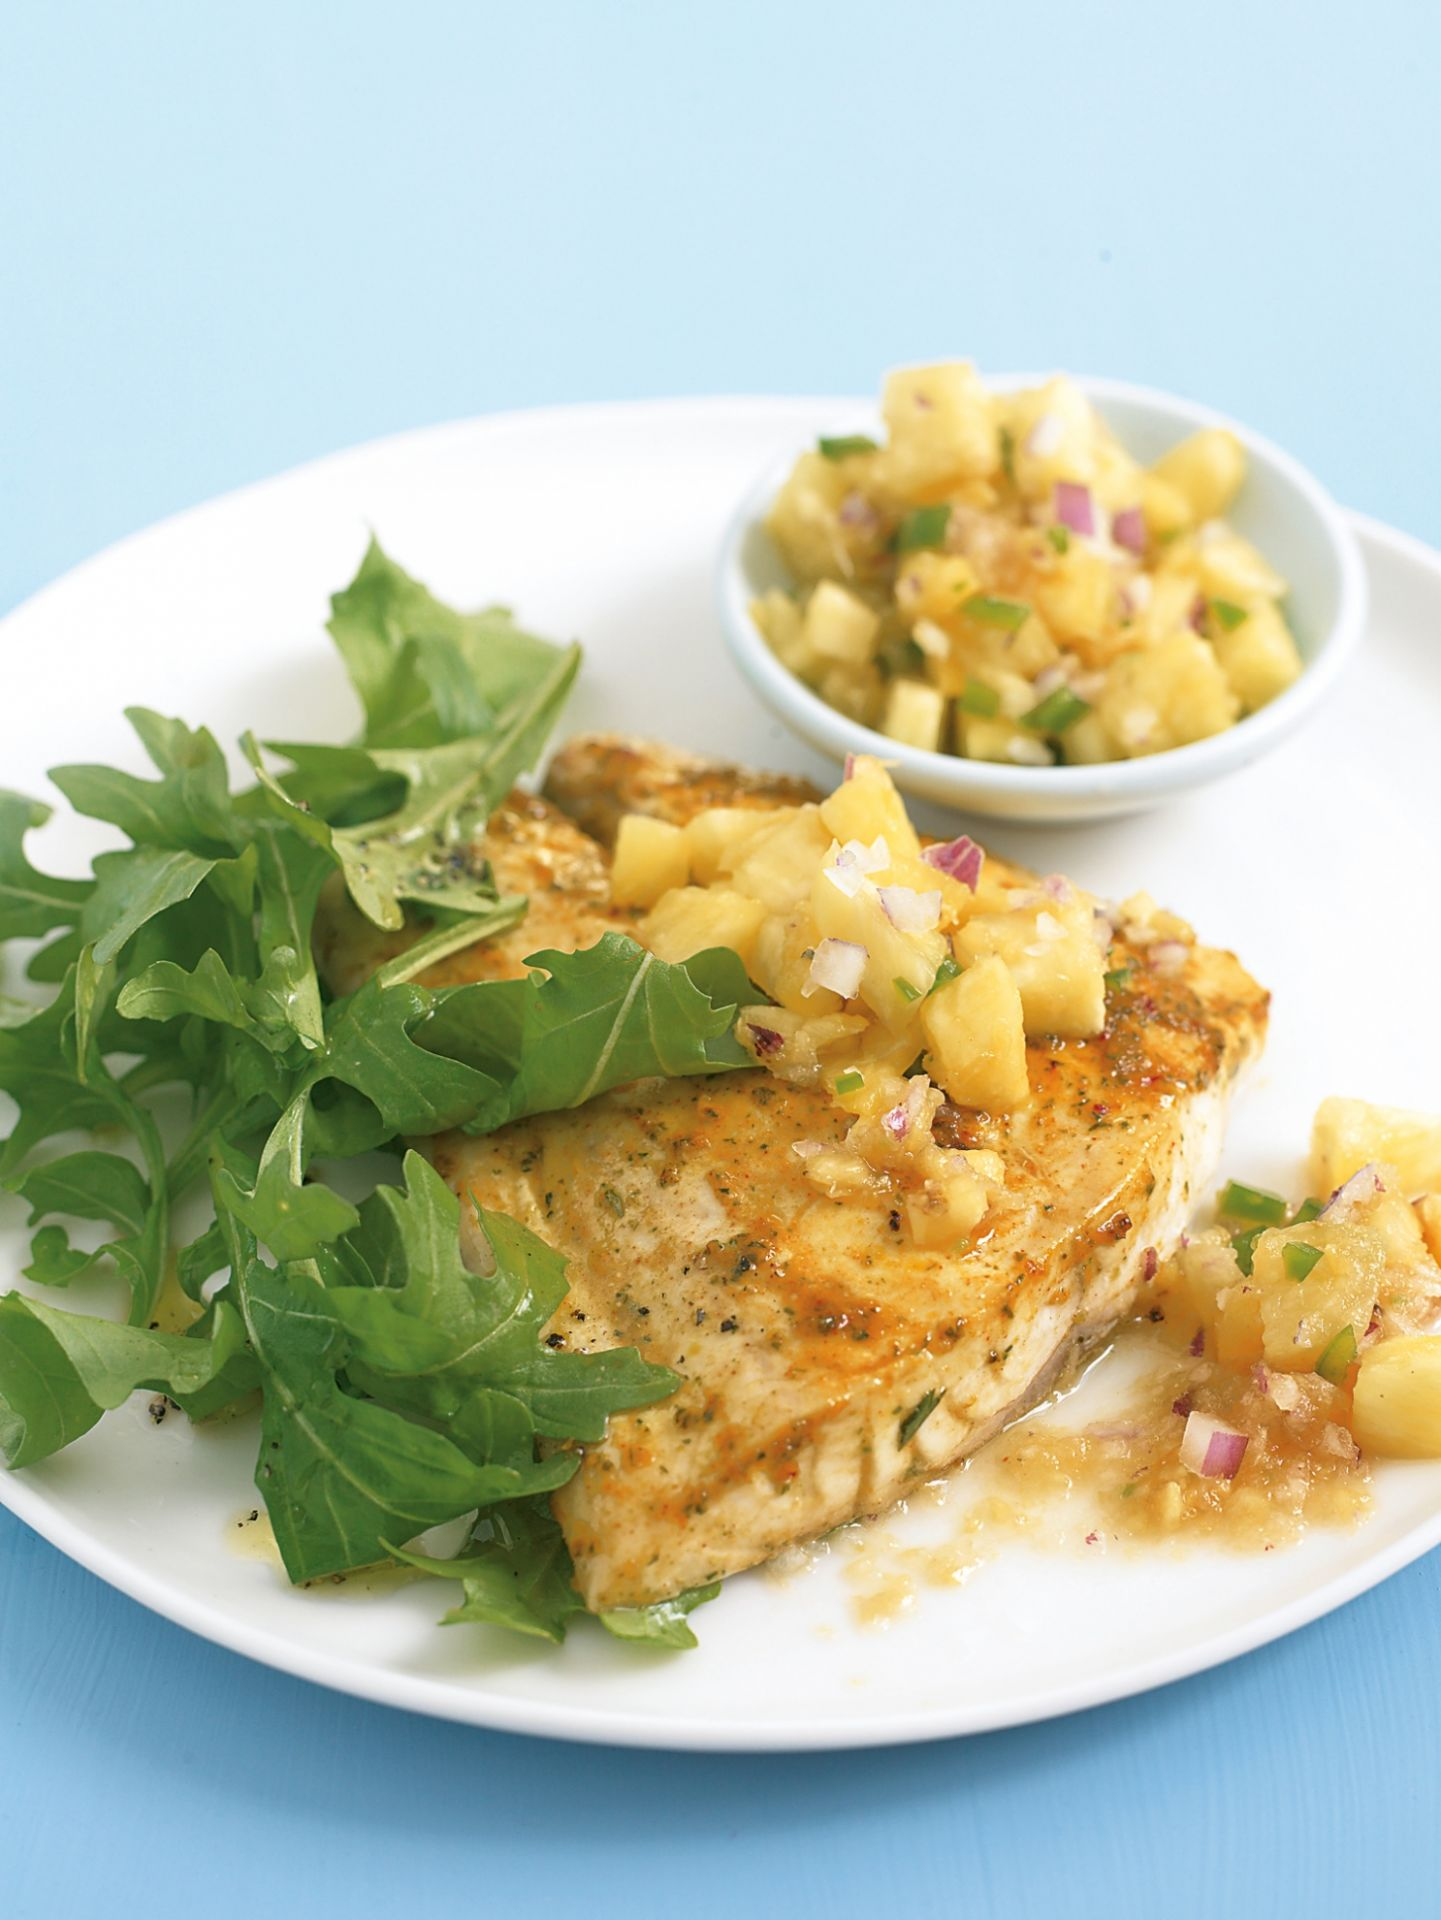 Moroccan Grilled Fish with Pineapple Salsa - Recipe Fish With Pineapple